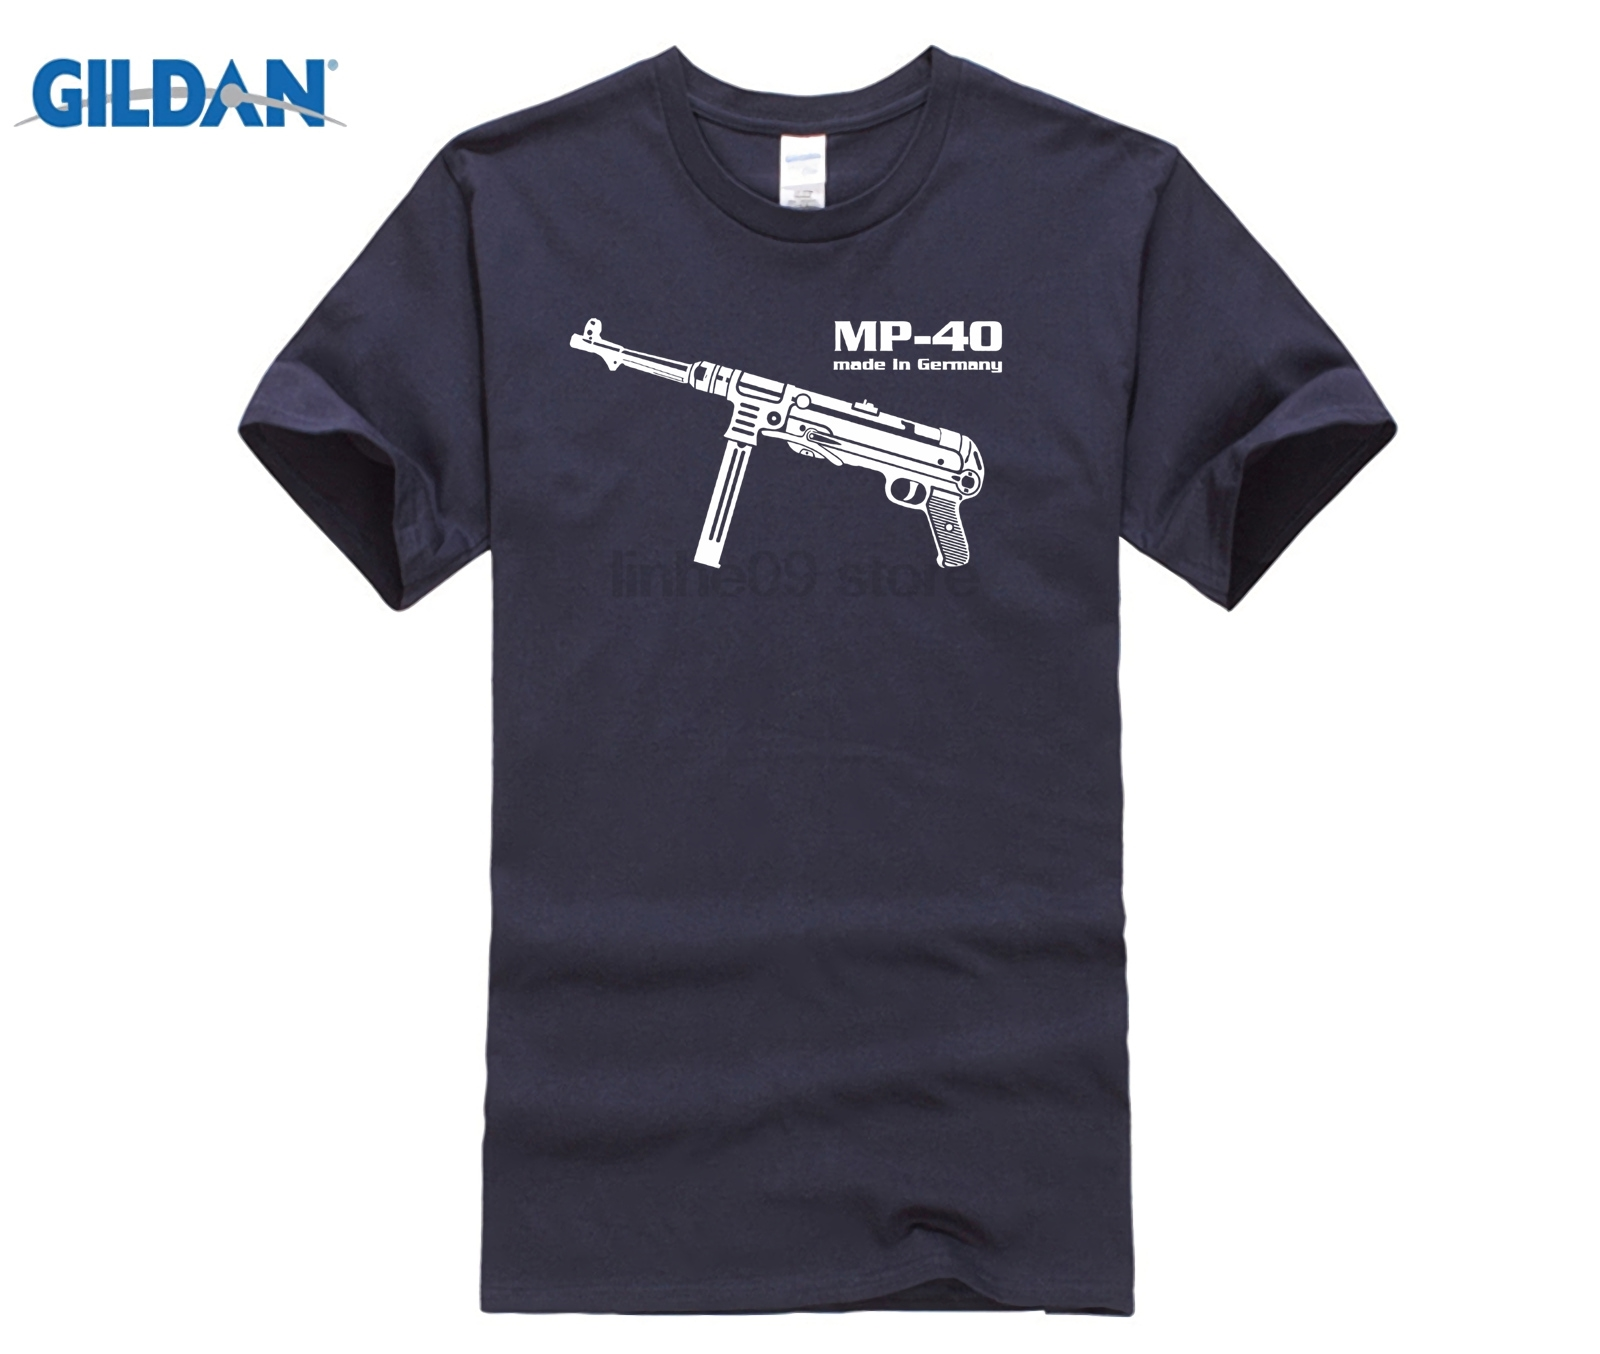 Different colors high quality casual men's street wear short sleeve Tee shirt Mp 40 Maschinen pistol Germany Wehrmacht image